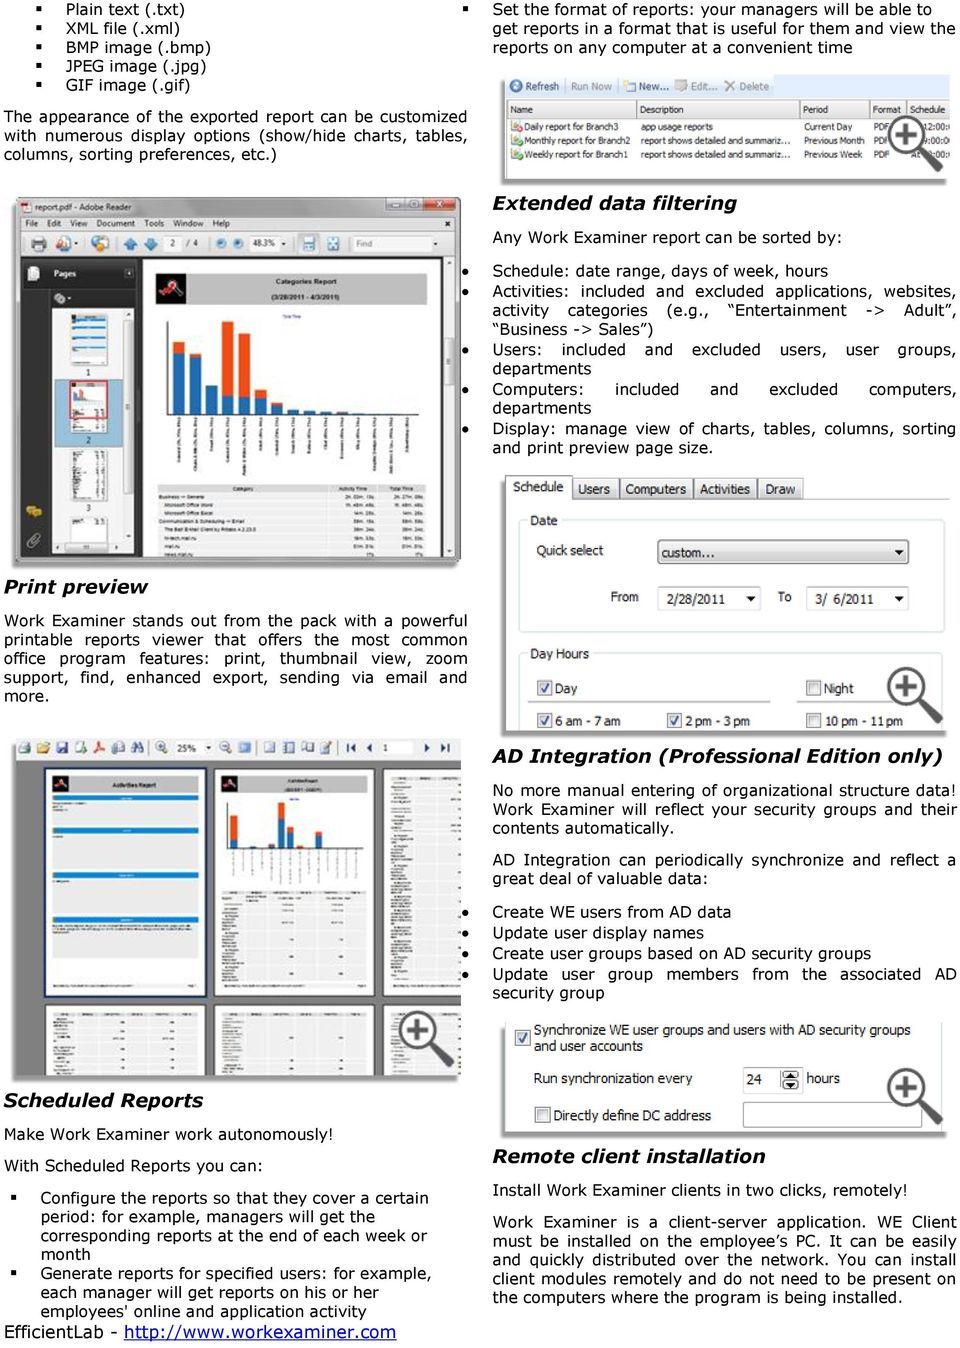 report can be customized with numerous display options (show/hide charts, tables, columns, sorting preferences, etc.